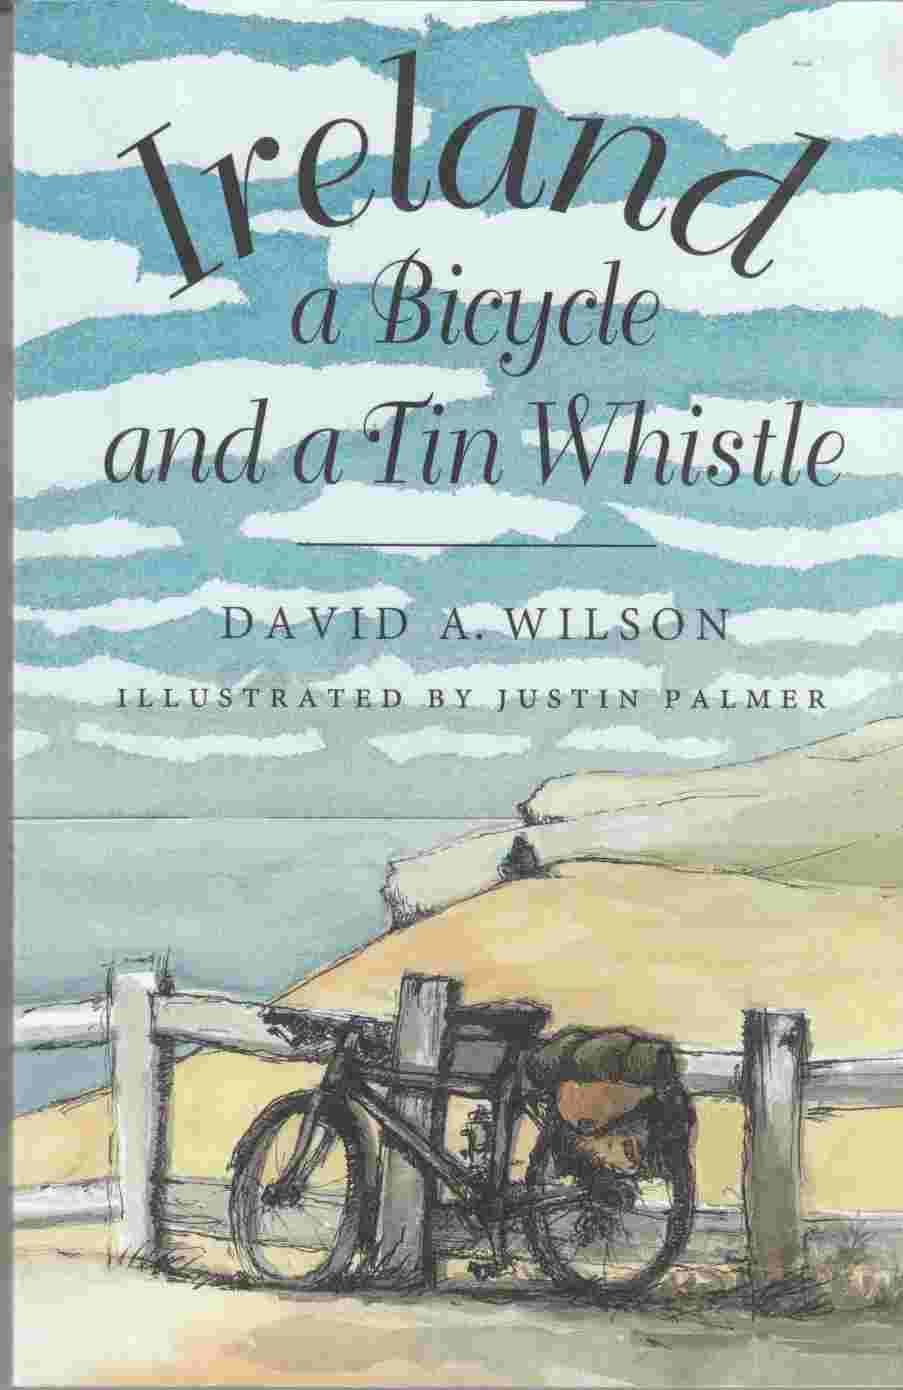 Image for Ireland, a Bicycle and a Tin Whistle